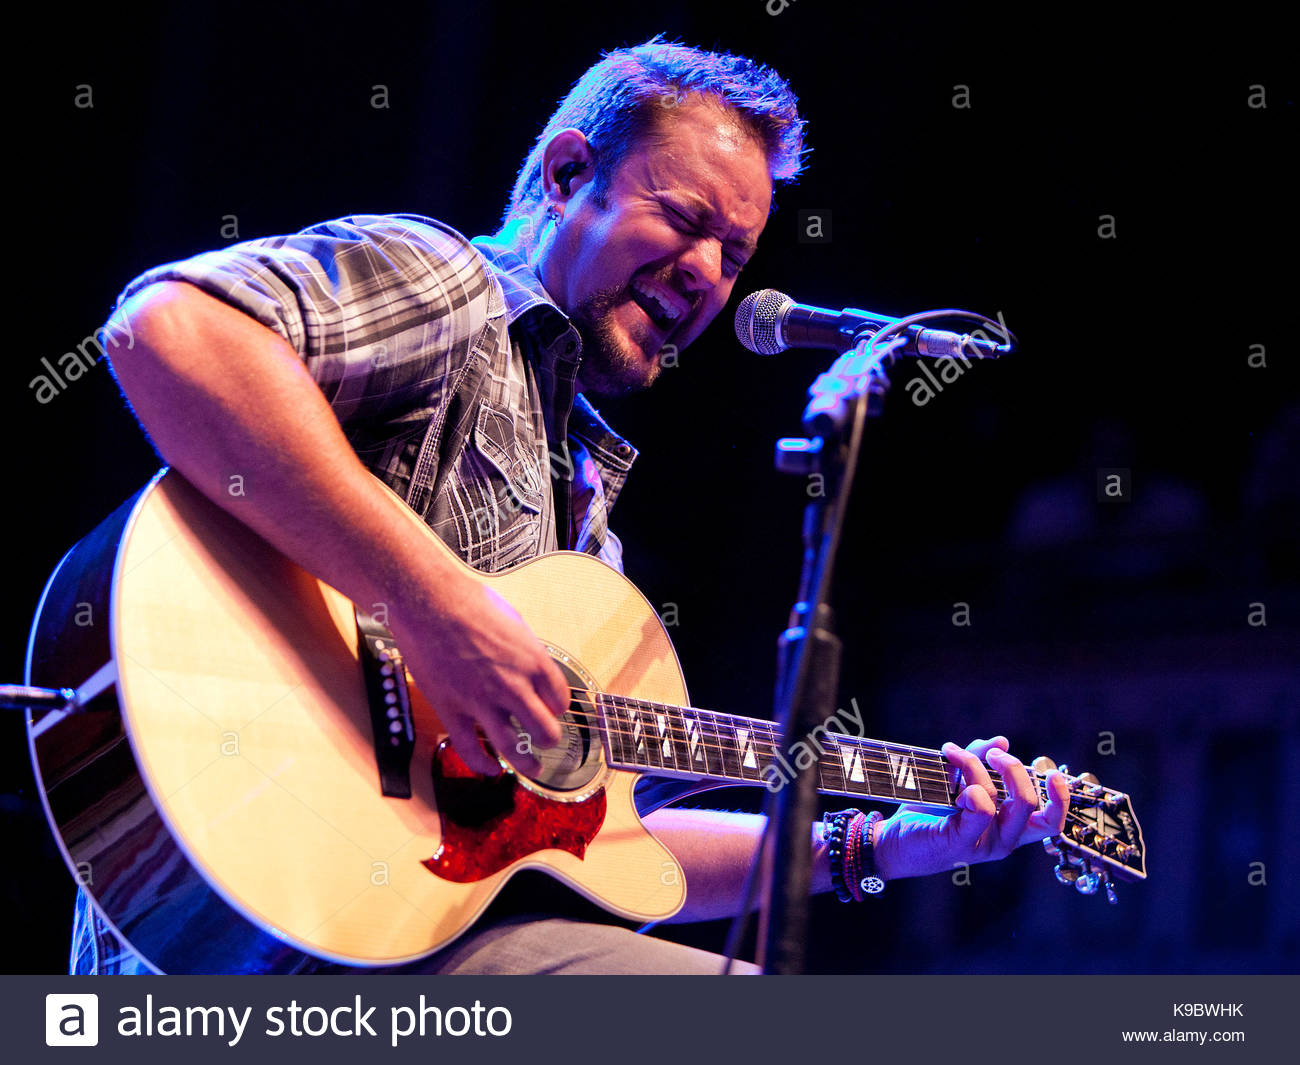 Hit rockers 3 Doors Down performed at The Tabernacle on Wednesday September 10 2014 in Atlanta GA. The performance was live-streamed on Yahoo! Music.  sc 1 st  Alamy & Chet Roberts. Hit rockers 3 Doors Down performed at The Tabernacle ...